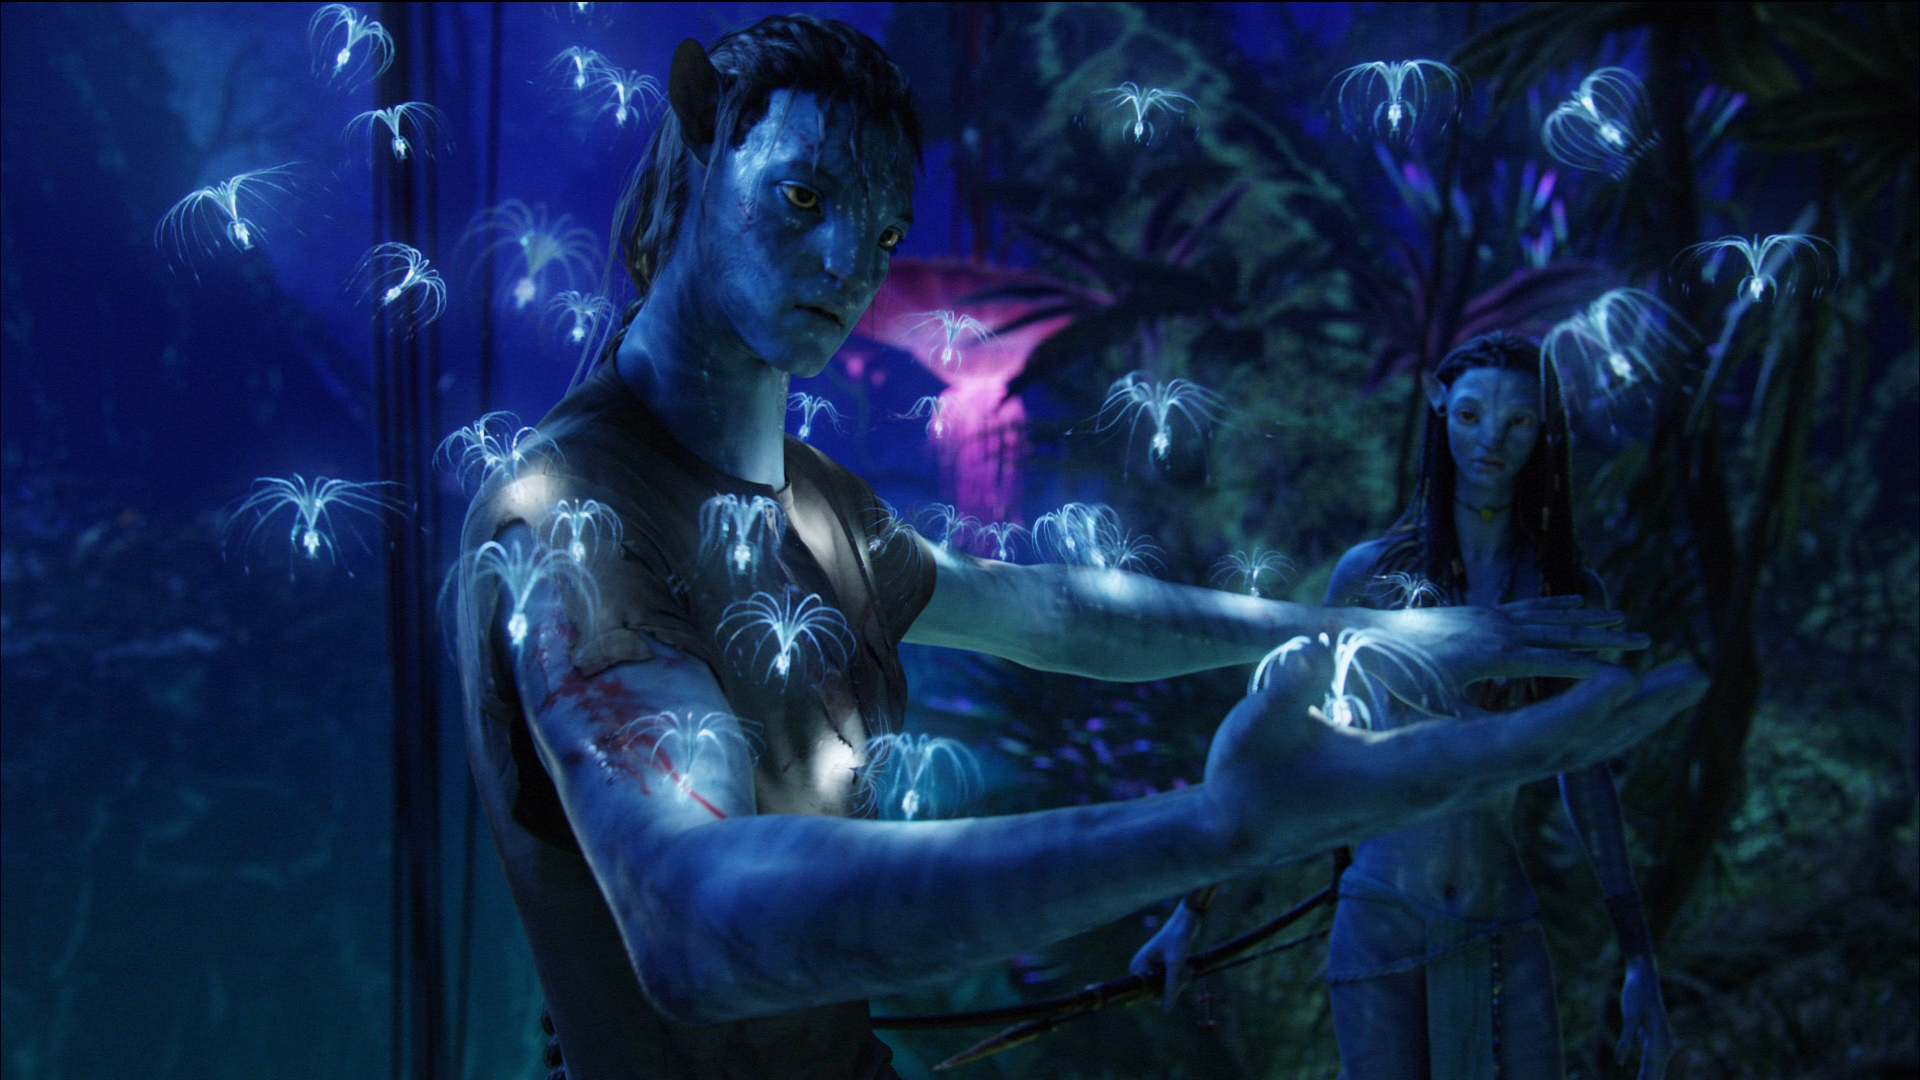 Original Avatar HD Wallpapers for All Avatar Wallpaper Fans